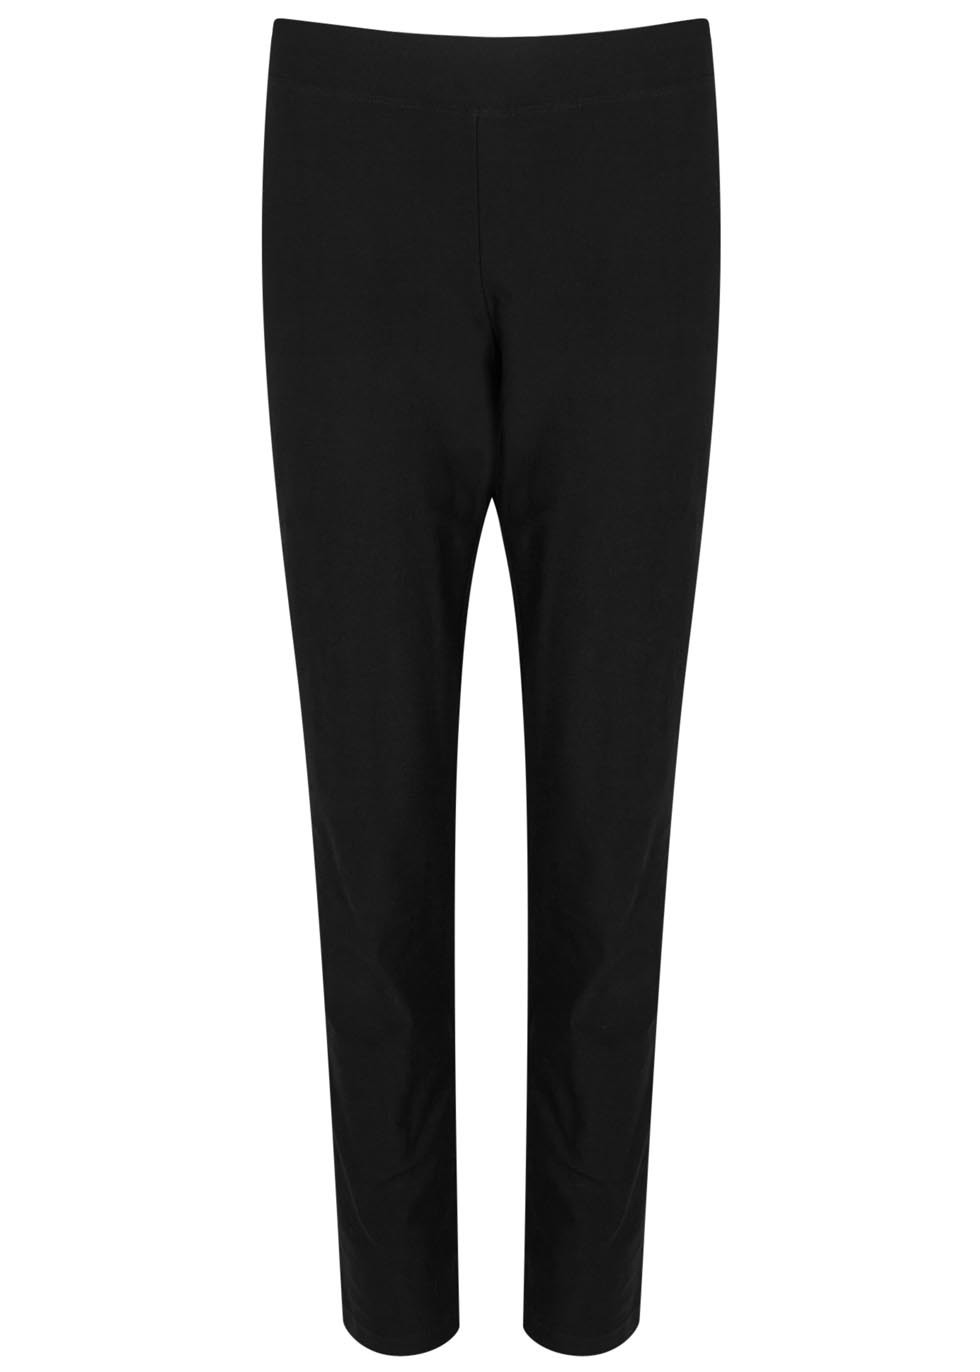 Black Slim Leg Crepe Trousers - length: standard; pattern: plain; waist: mid/regular rise; predominant colour: black; occasions: work, creative work; fibres: viscose/rayon - stretch; texture group: crepes; fit: slim leg; pattern type: fabric; style: standard; season: a/w 2015; wardrobe: basic